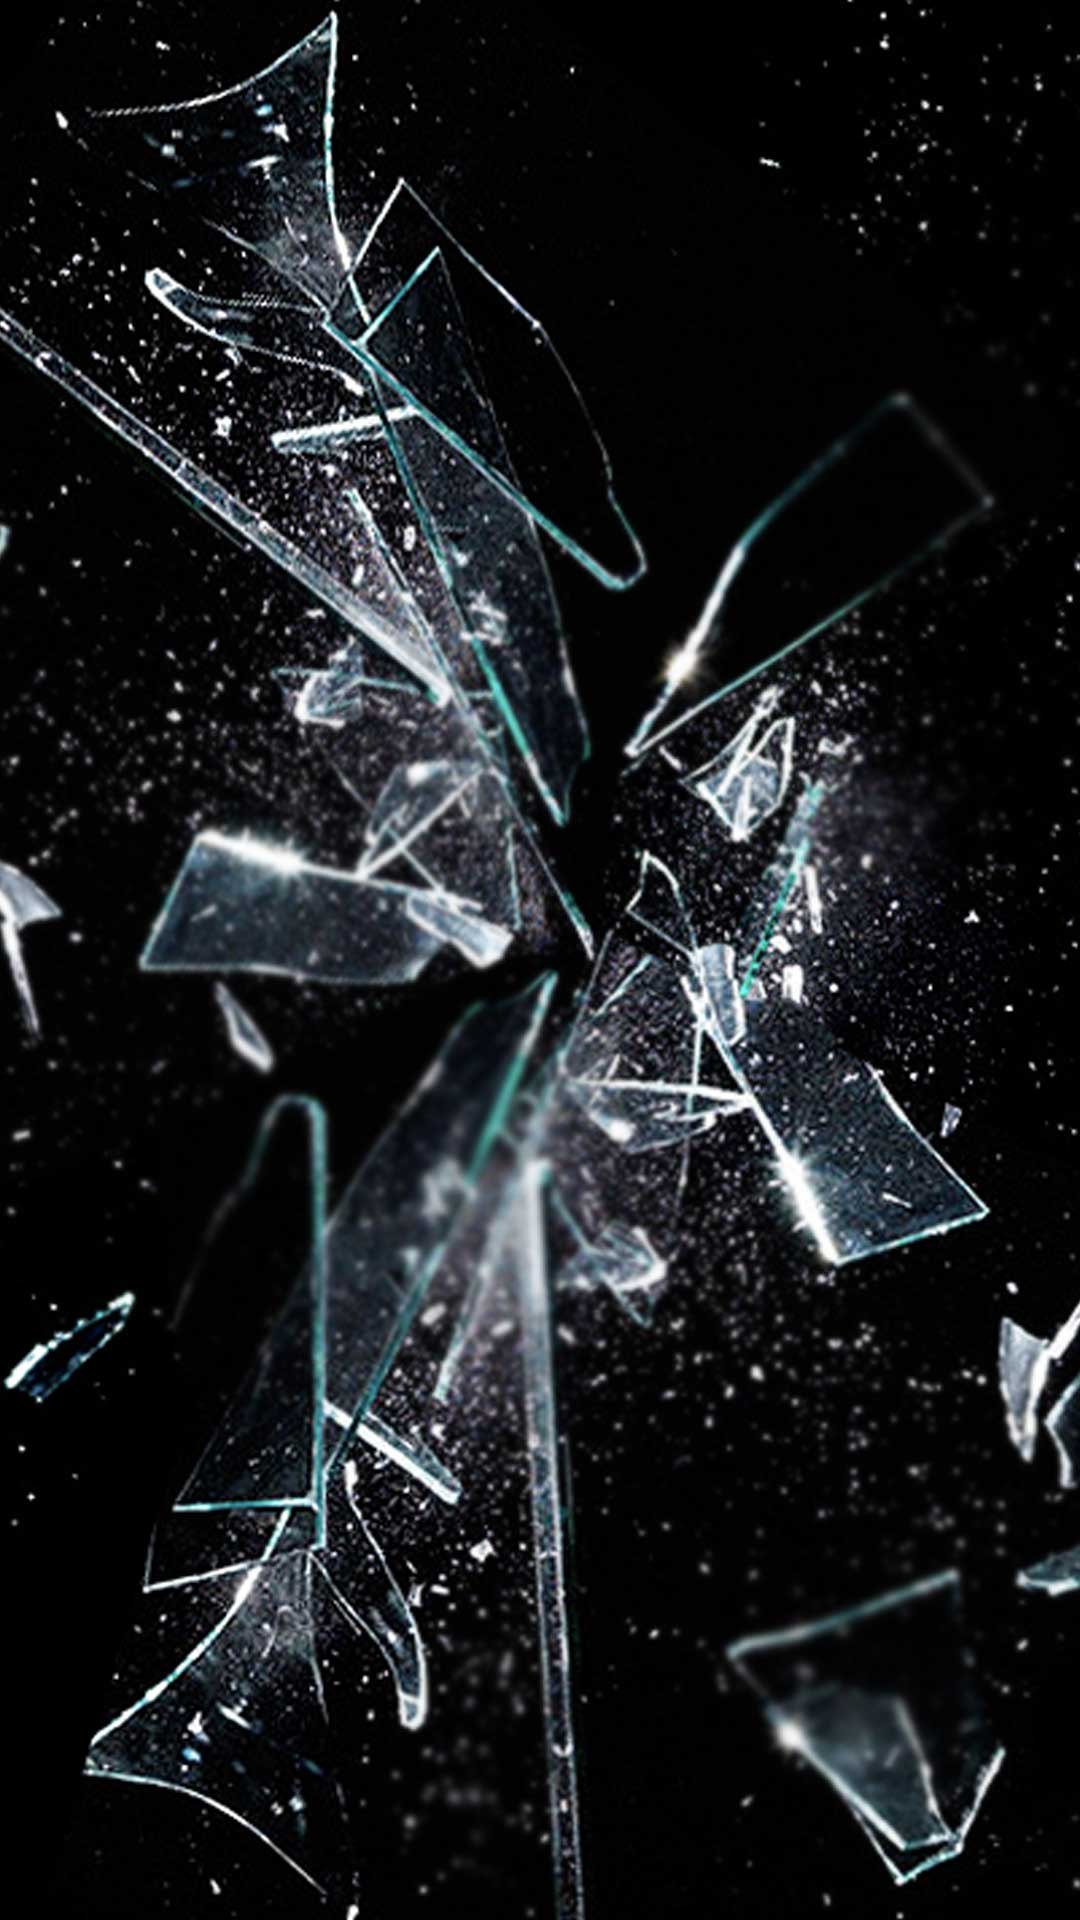 Broken Screen Wallpaper Hd 2017 Android Iphone Windows Pc